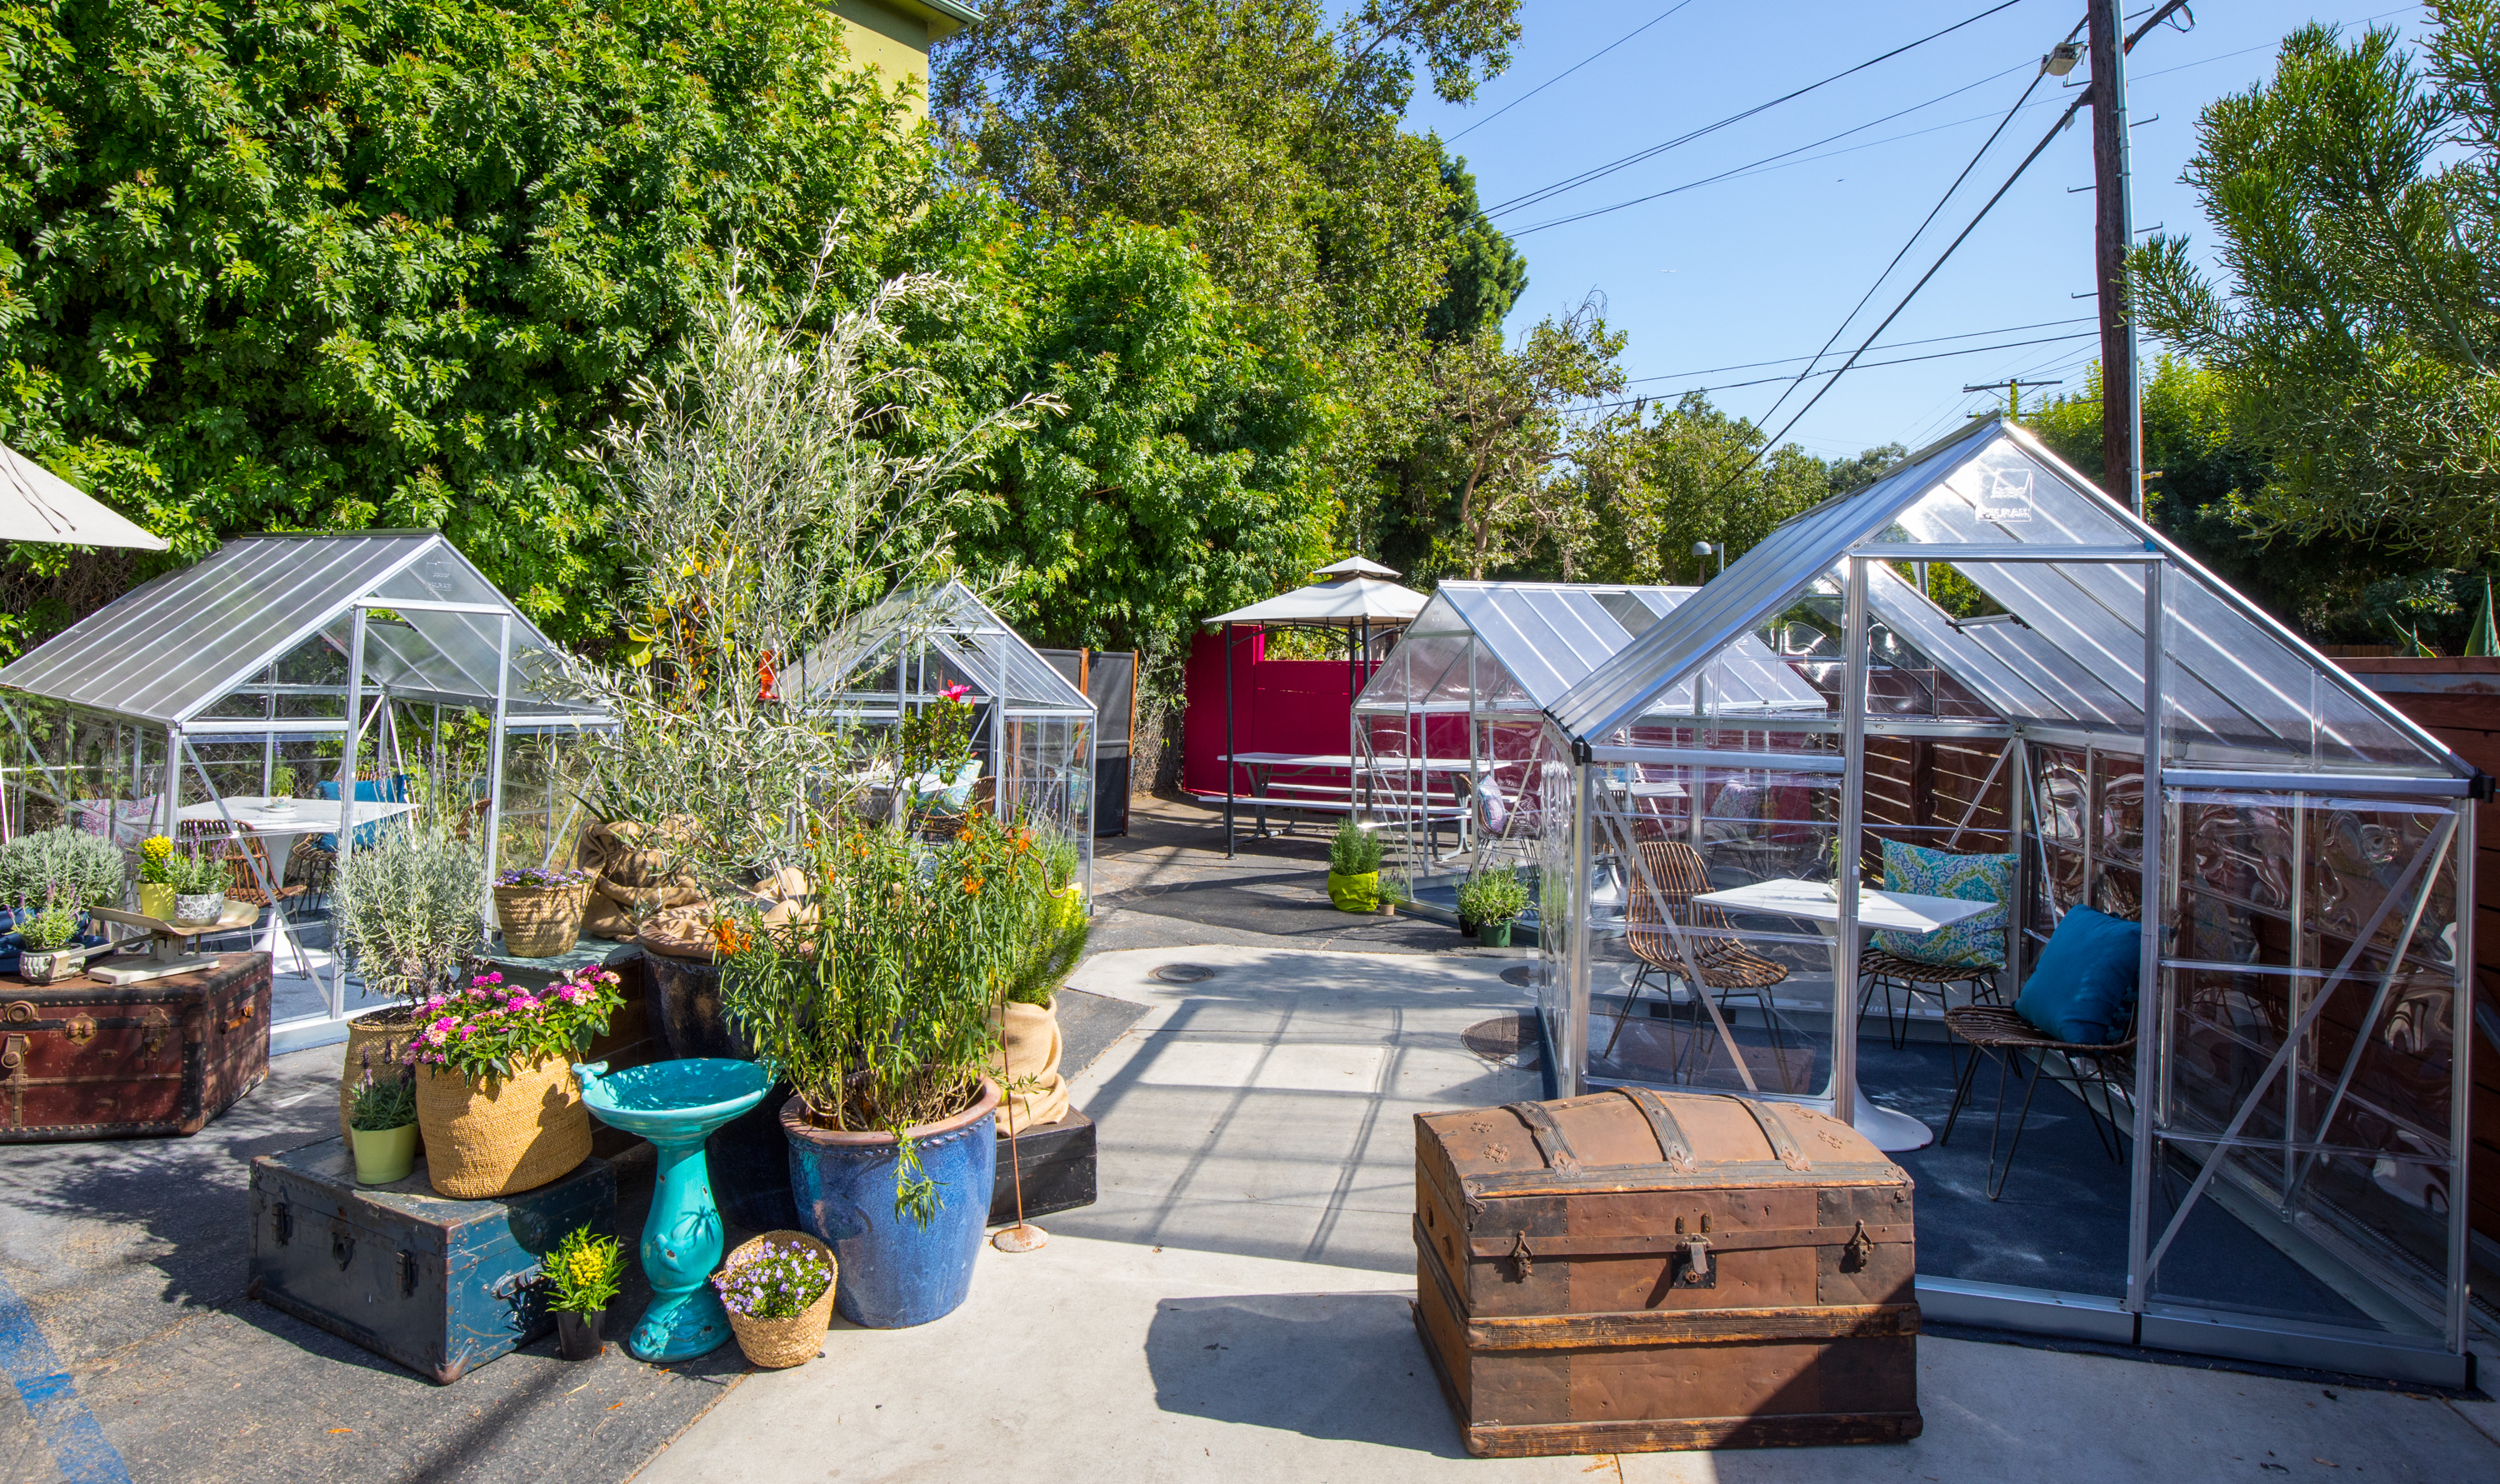 Greenhouse dining at Lady Byrd Cafe in Echo Park, California